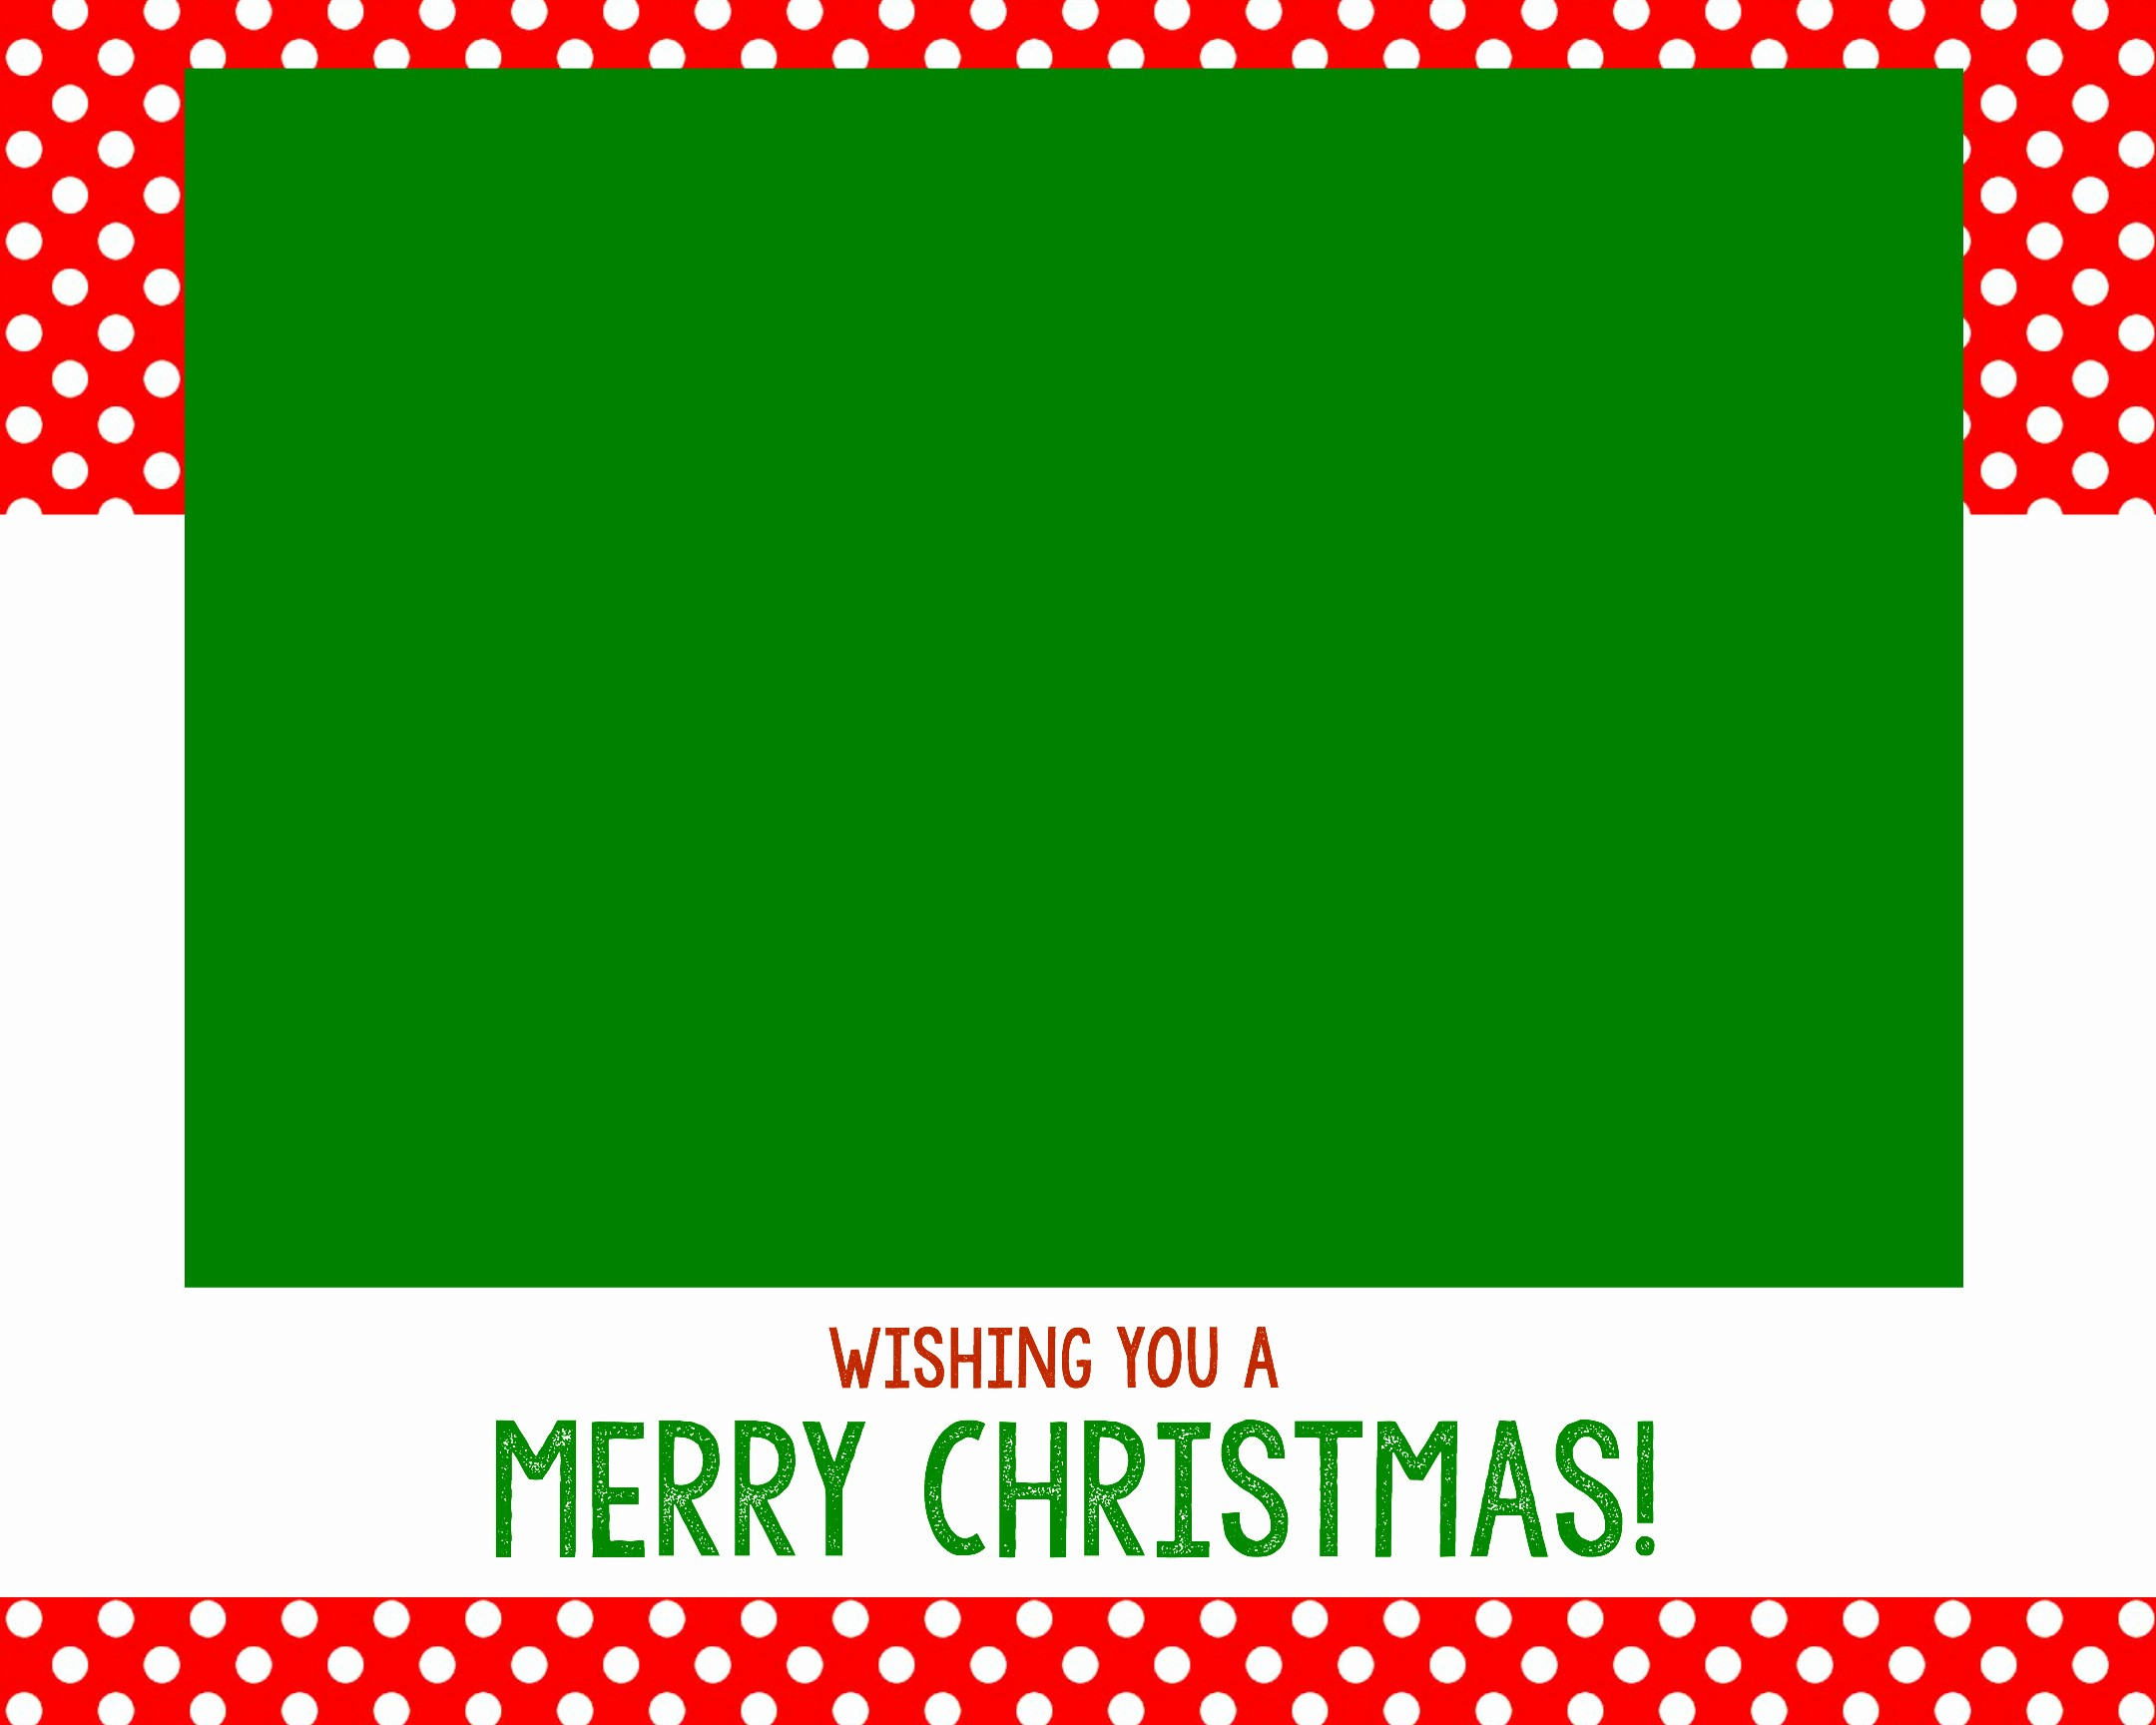 Christmas Certificate Template Free Download New Free Christmas Card Templates Crazy Little Projects